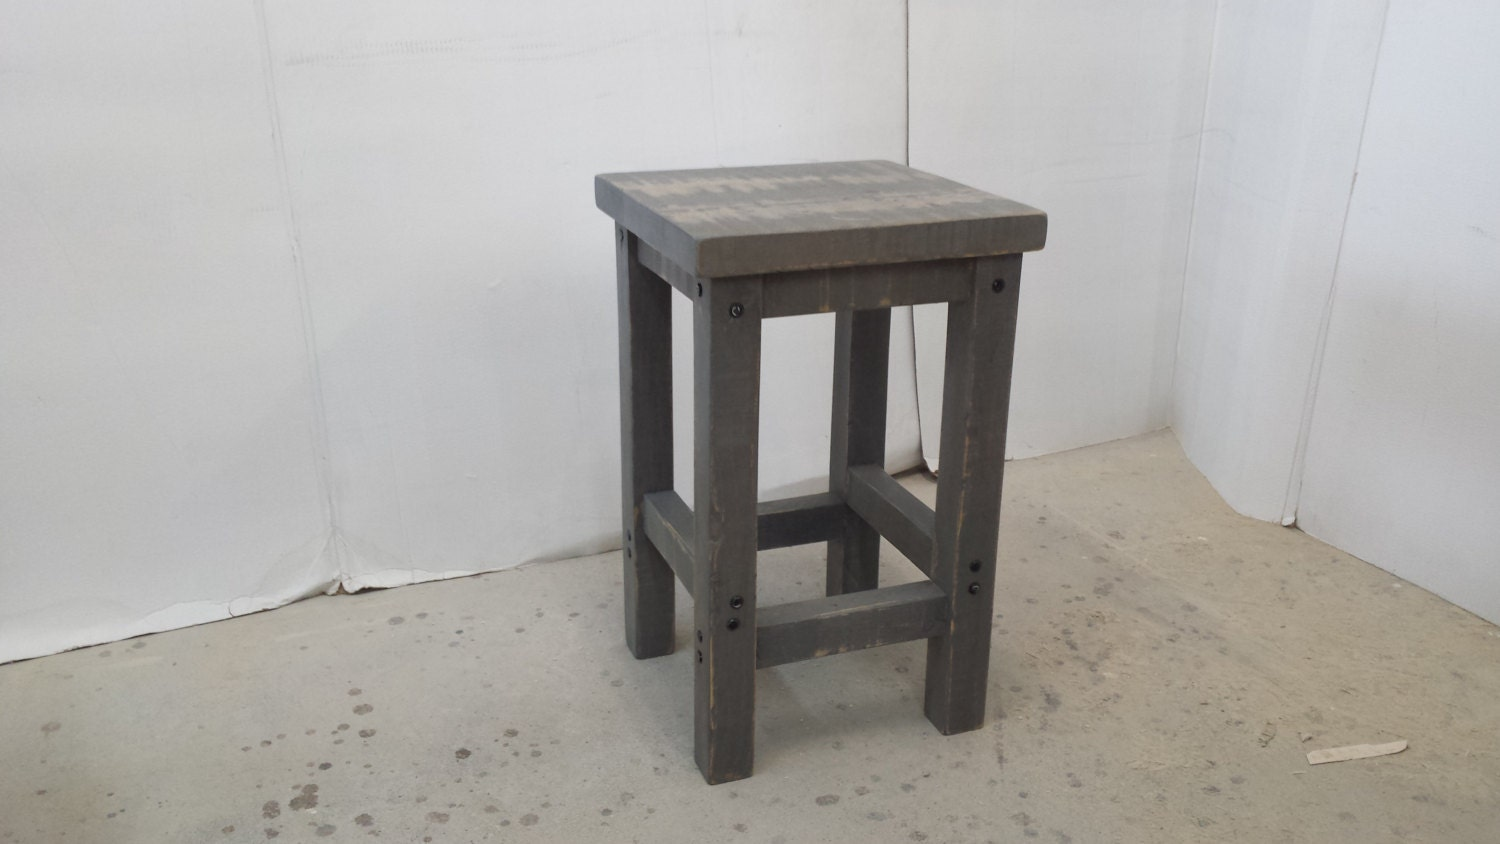 Rustic wood stool bar stools kitchen island stool for Bar stools for kitchen island